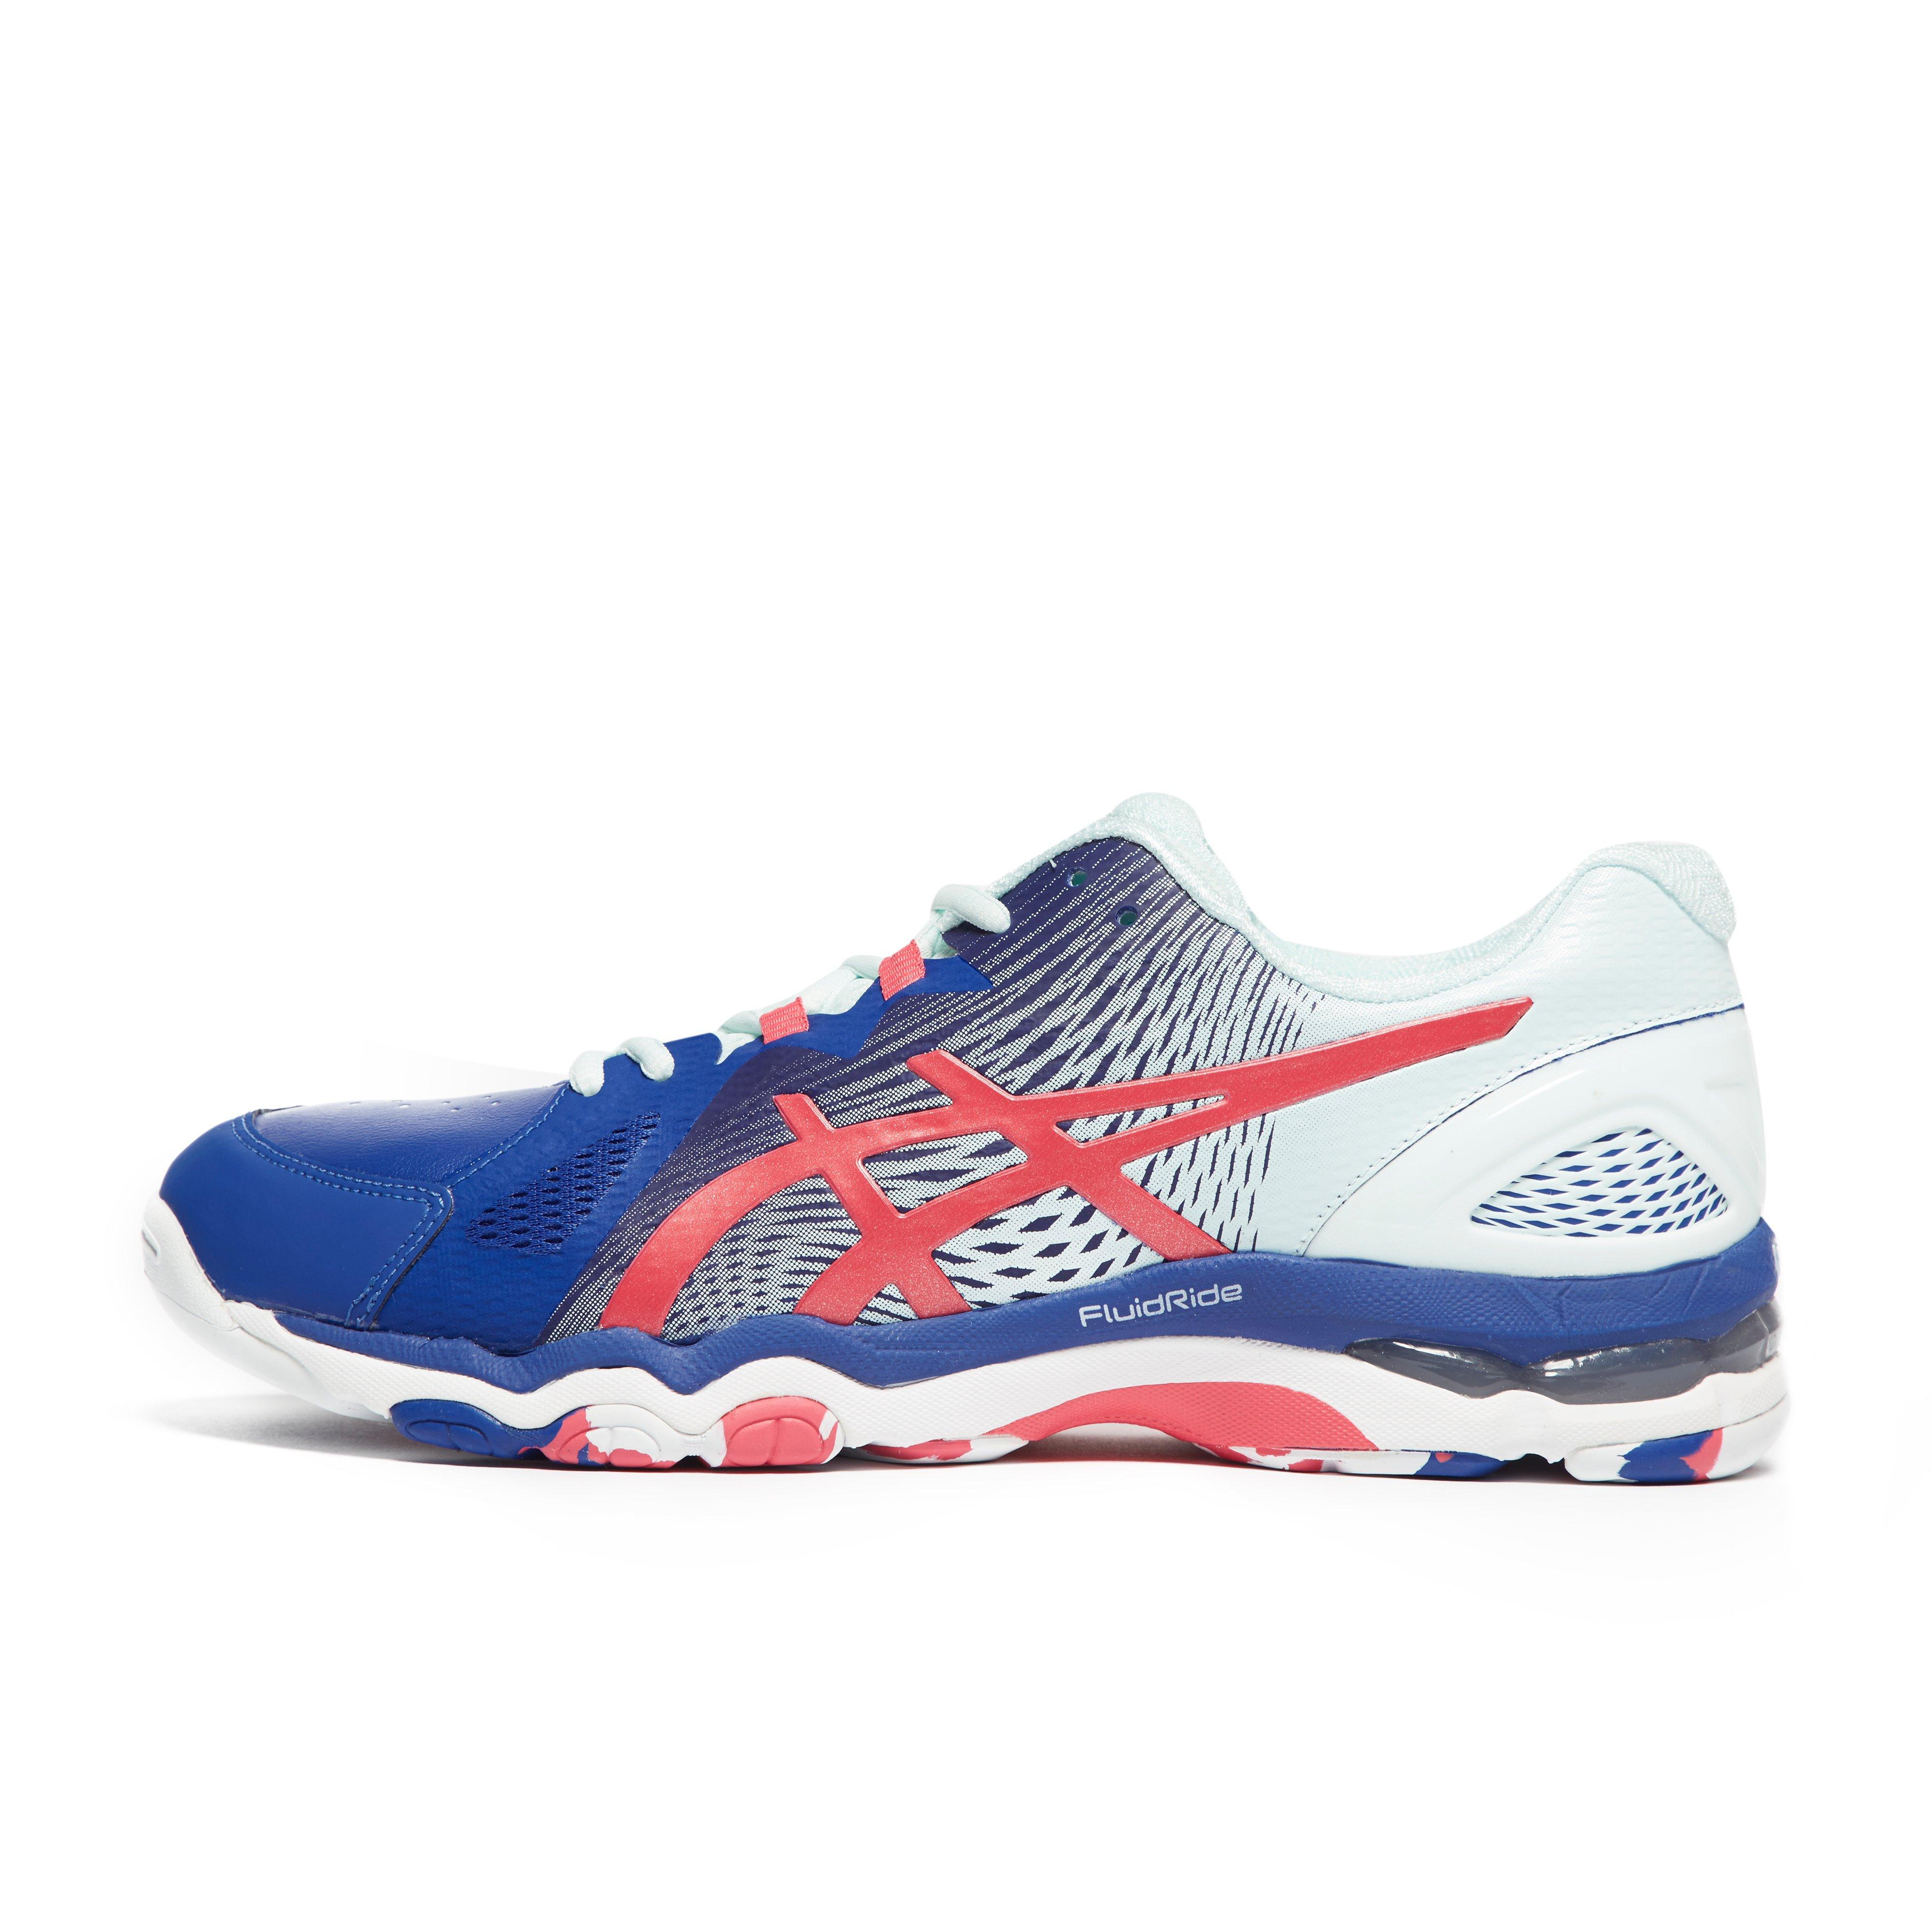 Details about Asics Gel-Netburner Super 8 Women s Netball Shoes Blue 6589a9bac4ea